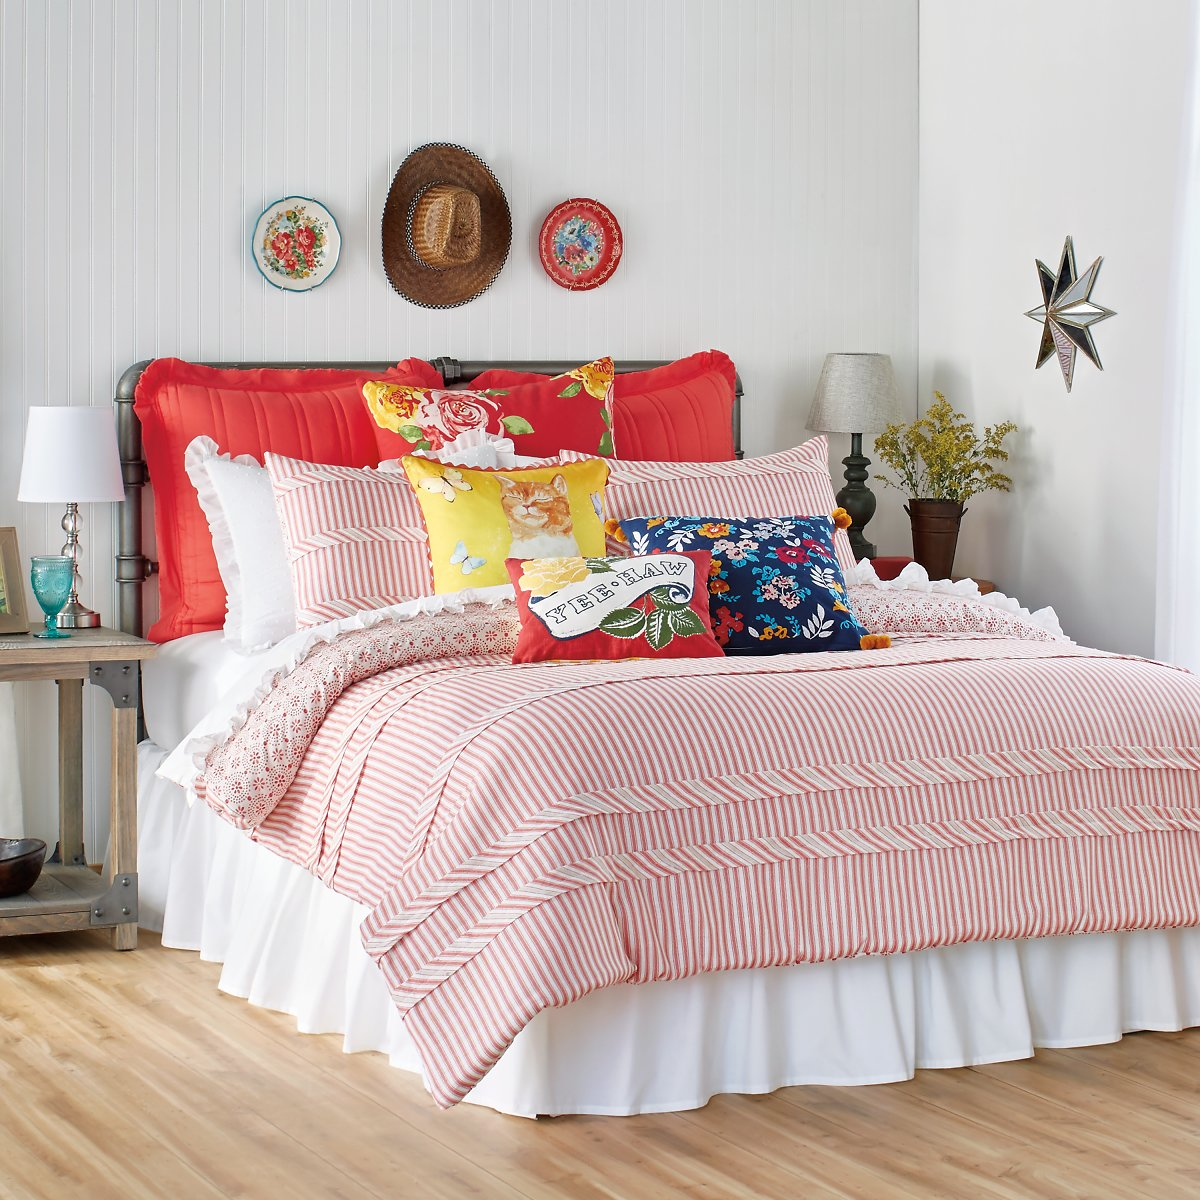 The Pioneer Woman Ticking Stripe Comforter in Red